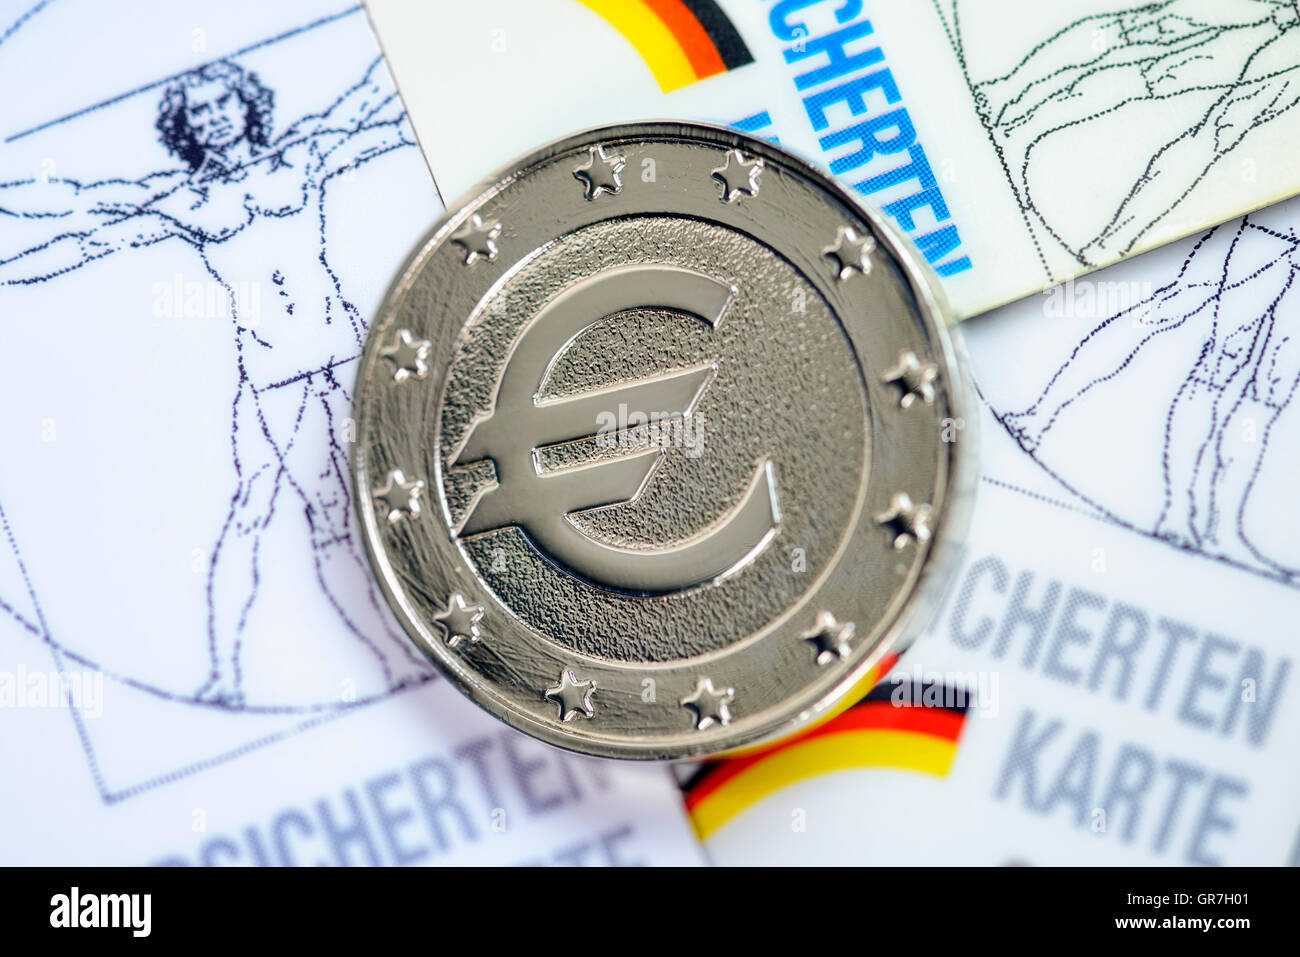 Euro Sign On Coin And Health Insurance Cards - Stock Image